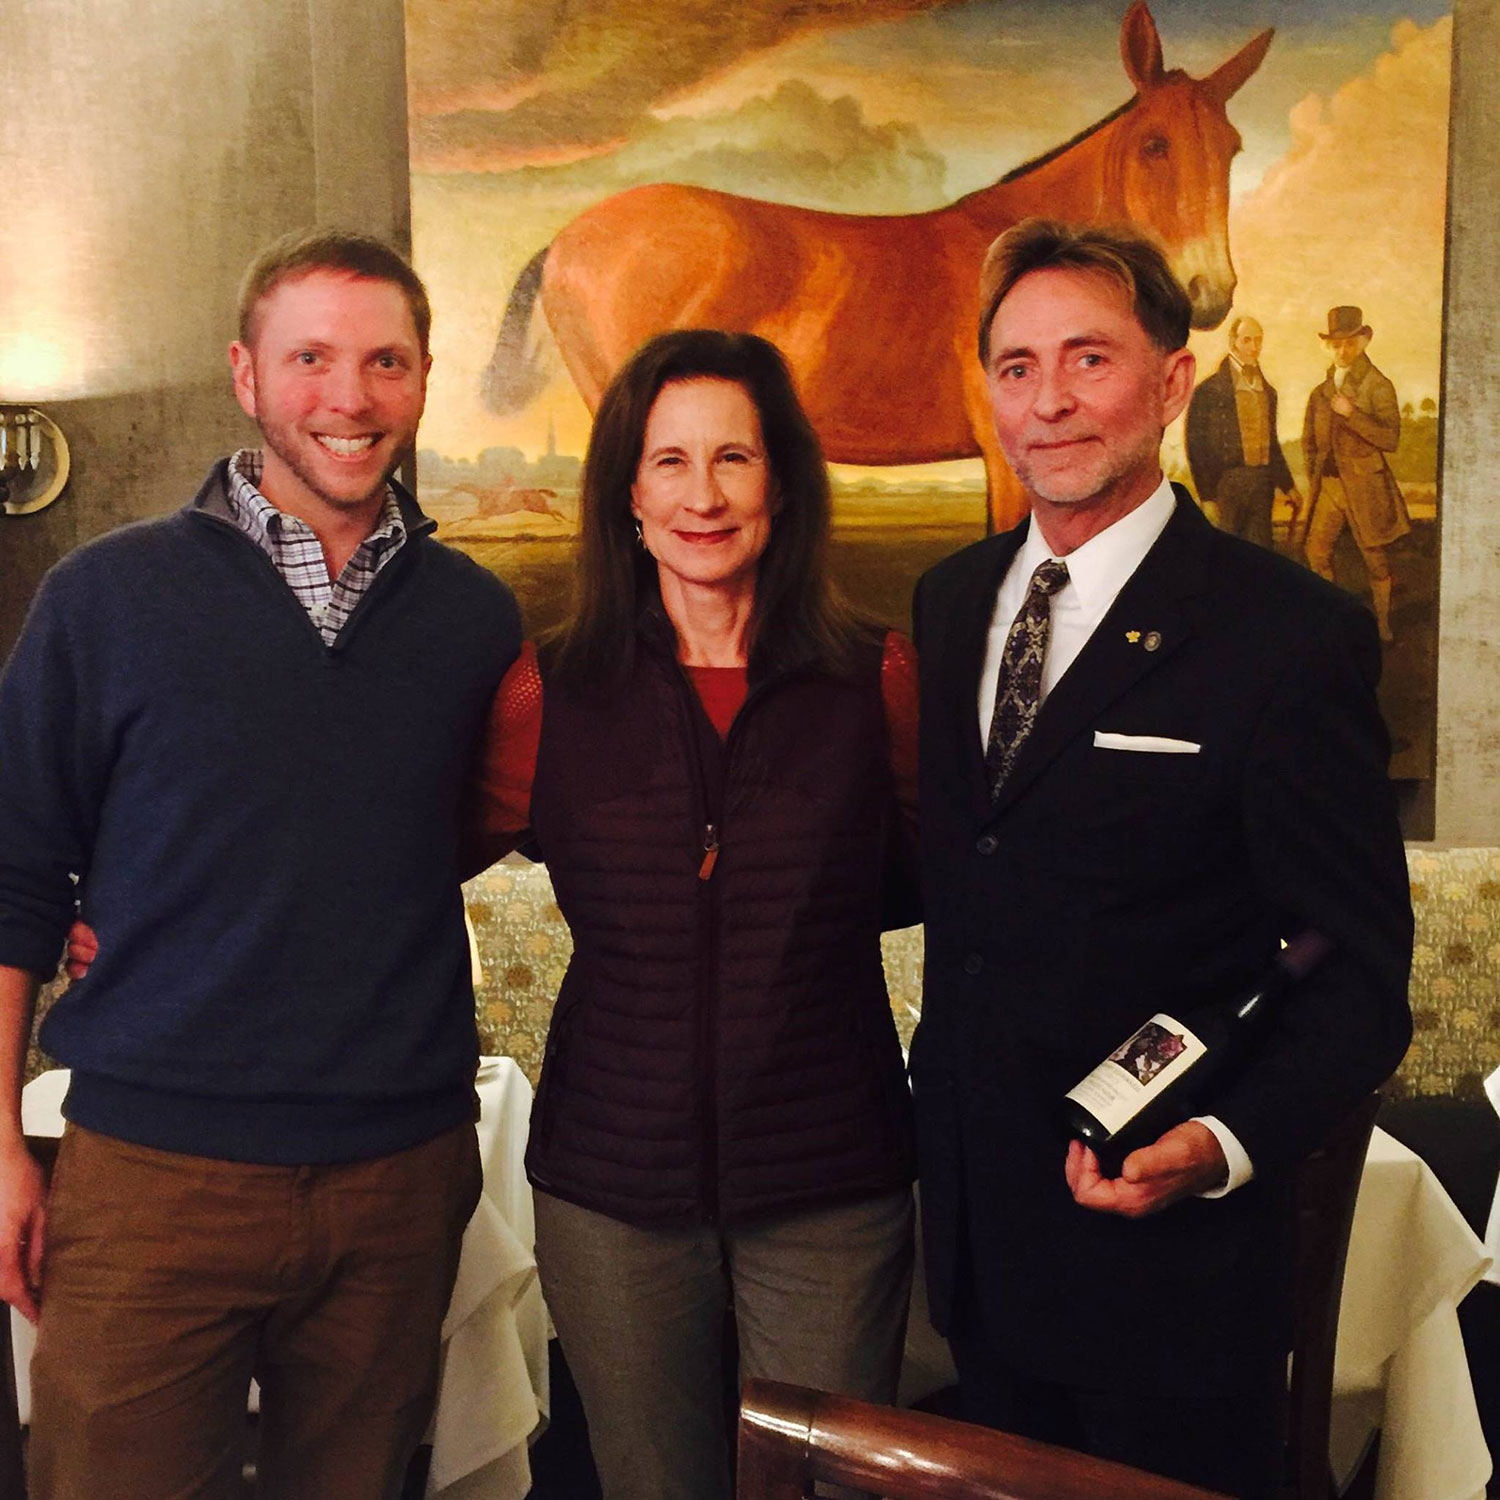 With Sommelier Dennis Perry (r) and his assistant mark Solomon